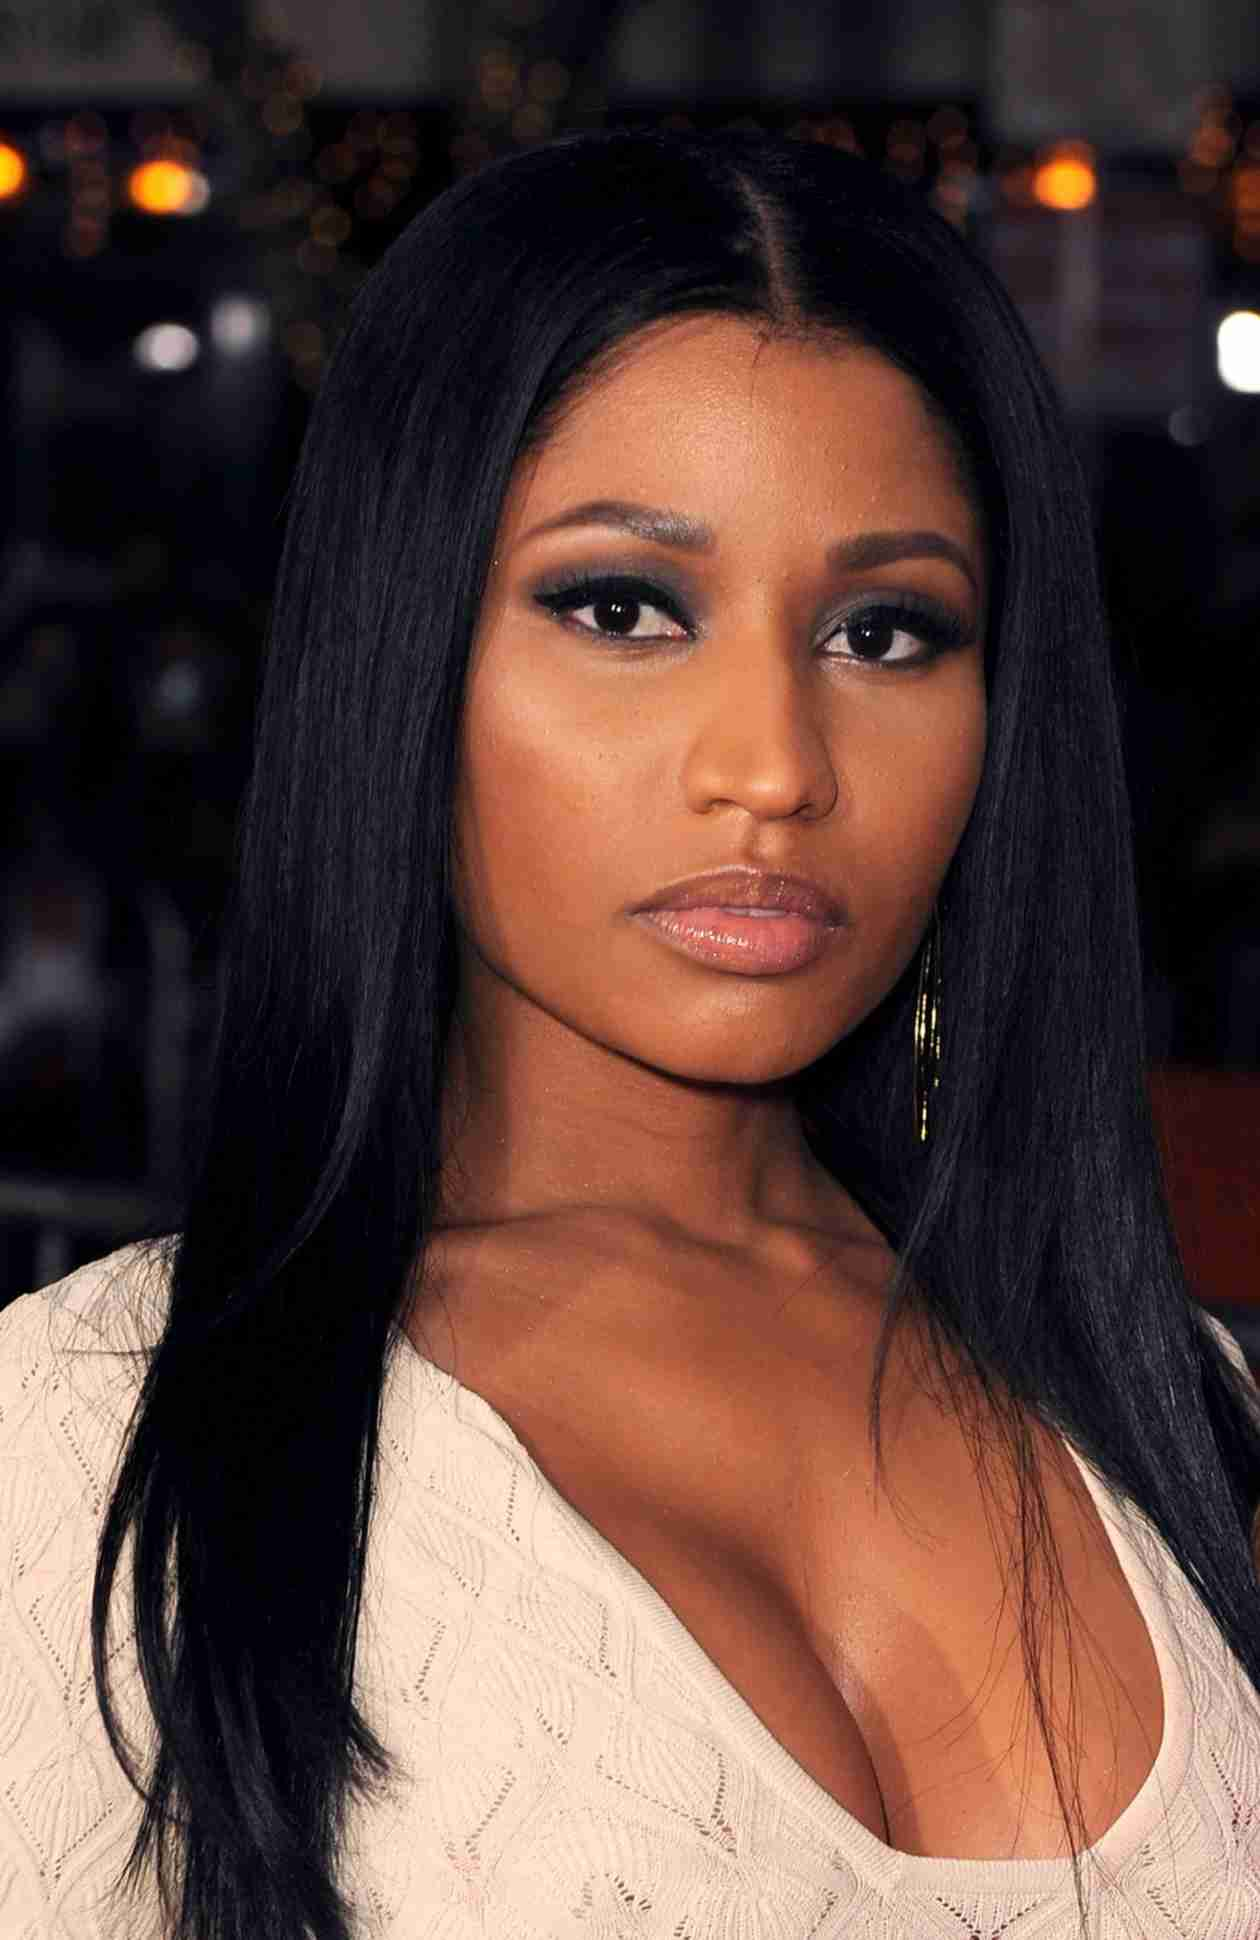 Nicki Minaj Sued by NBA Promoters For Not Partying Long Enough